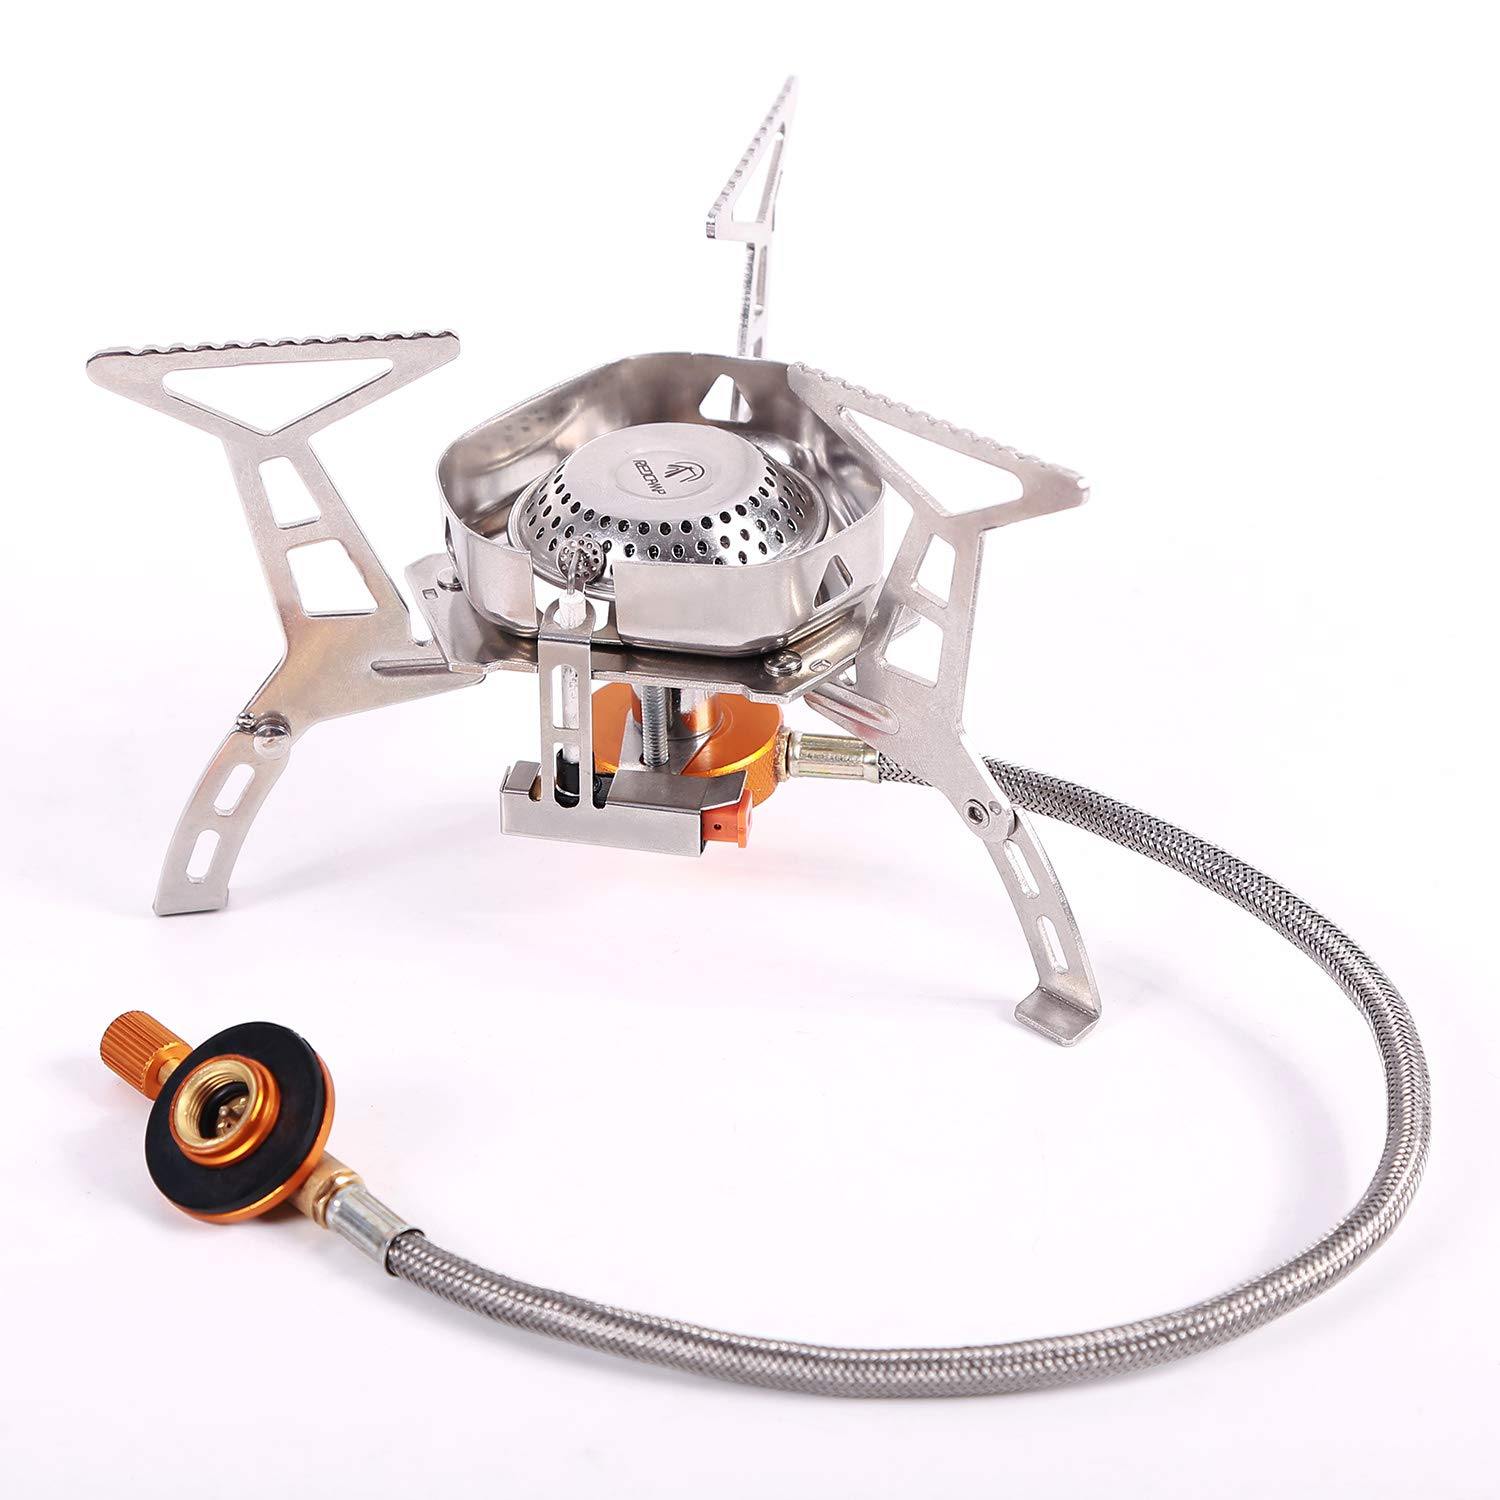 REDCAMP Windproof Portable Backpacking Stove with Piezo Ignition, 3500W Strong Firepower Lightweight Outdoor Camping Stove Propane Butane by REDCAMP